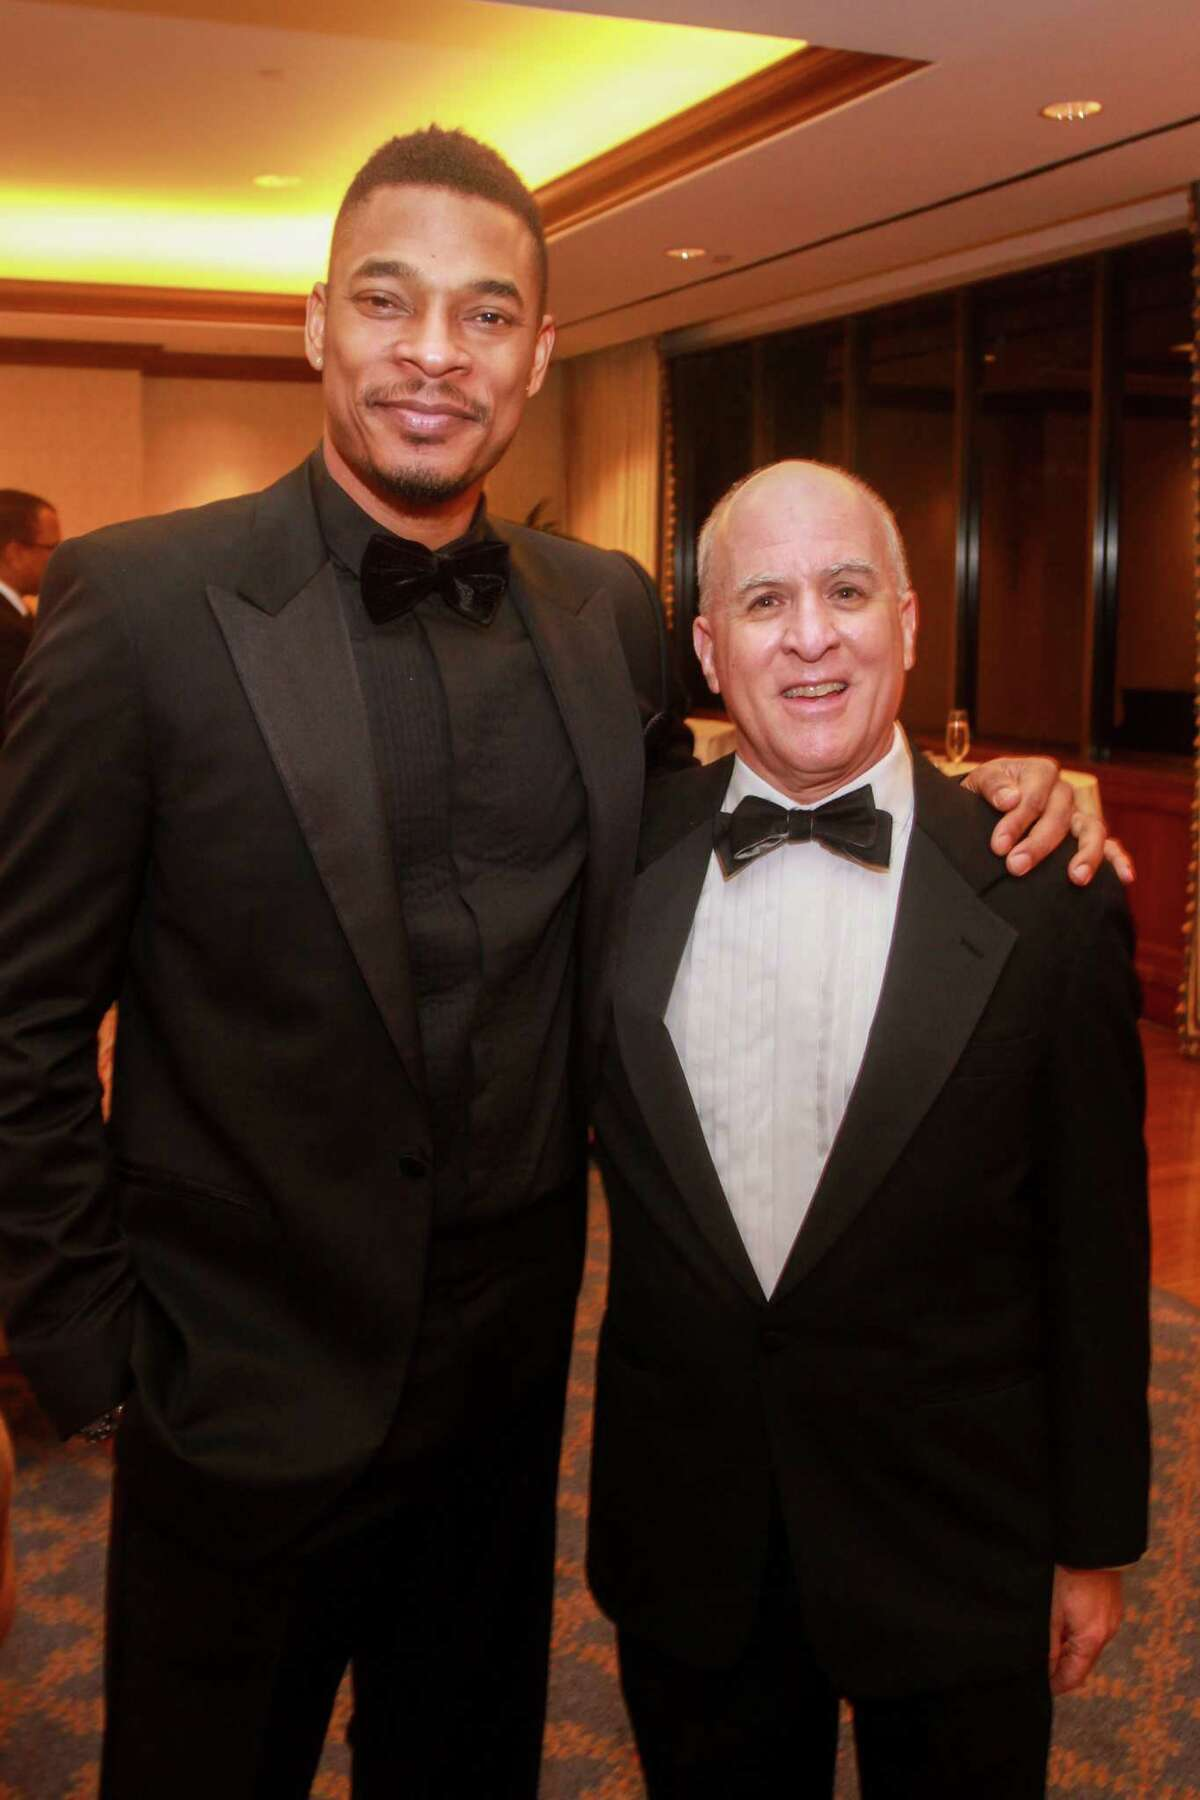 Terrance Hayes, left, and Rich Levy at the Inprint Poets & Writers Ball on February 8, 2020 in Houston at The Houstonian.